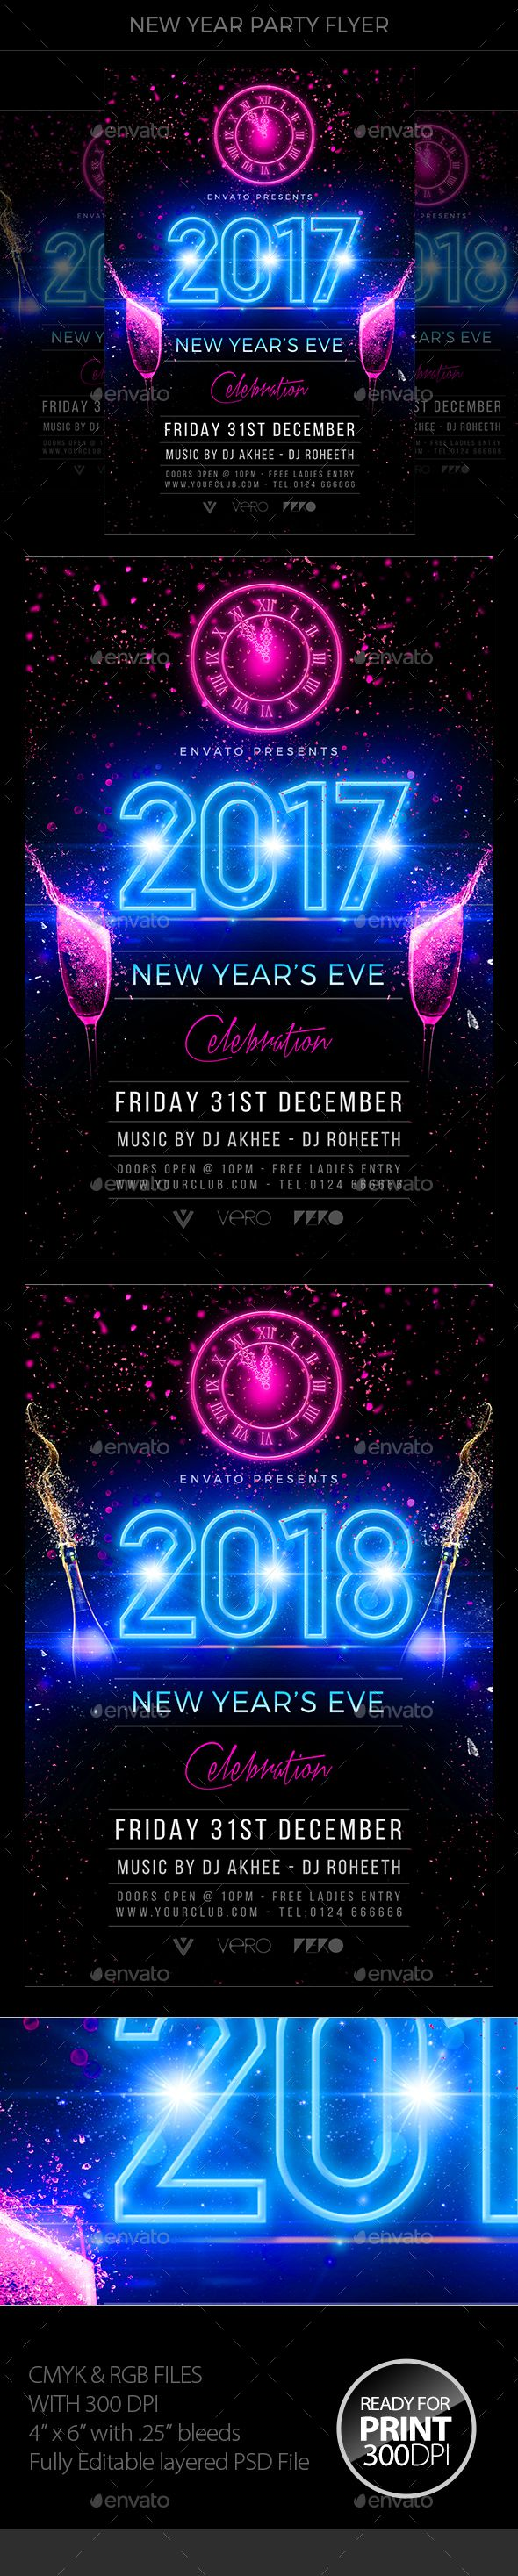 New Year Party Flyer Template PSD #nye